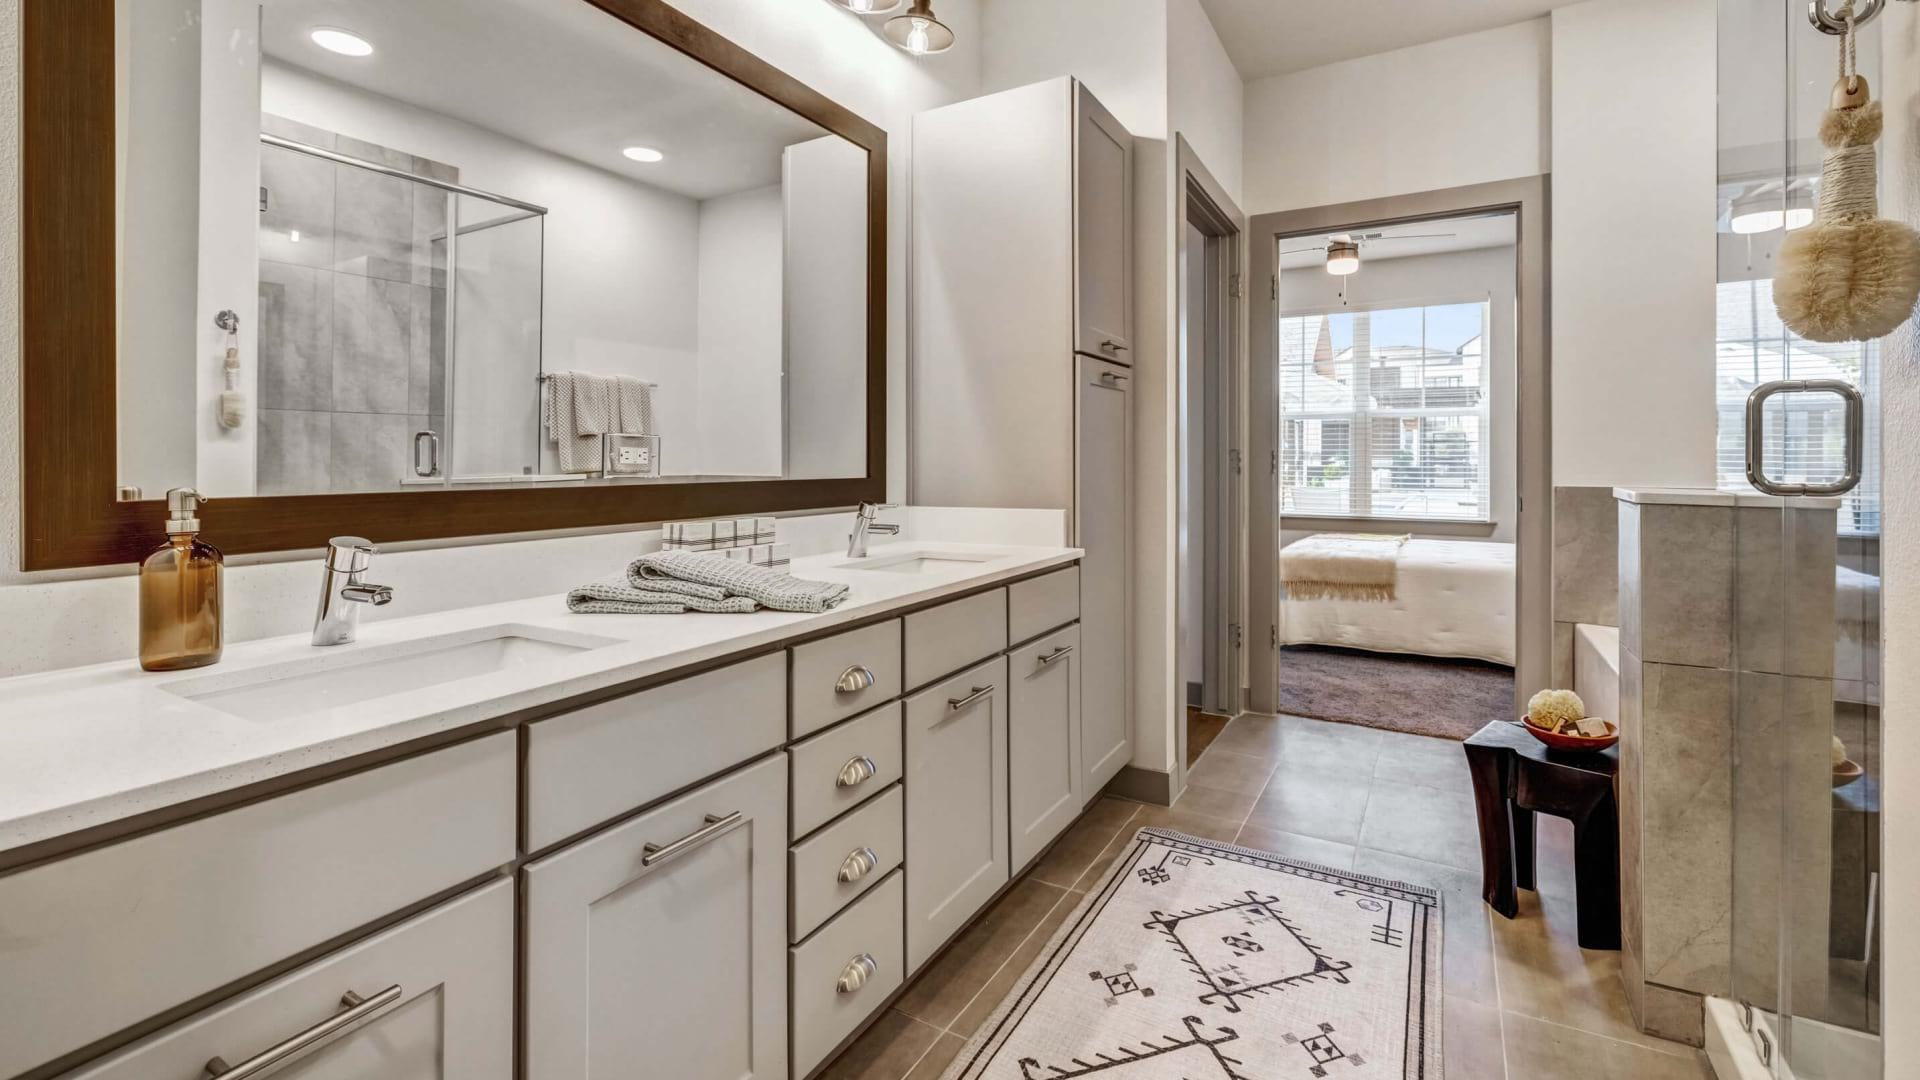 Bathroom with modern lighting and ample counter space